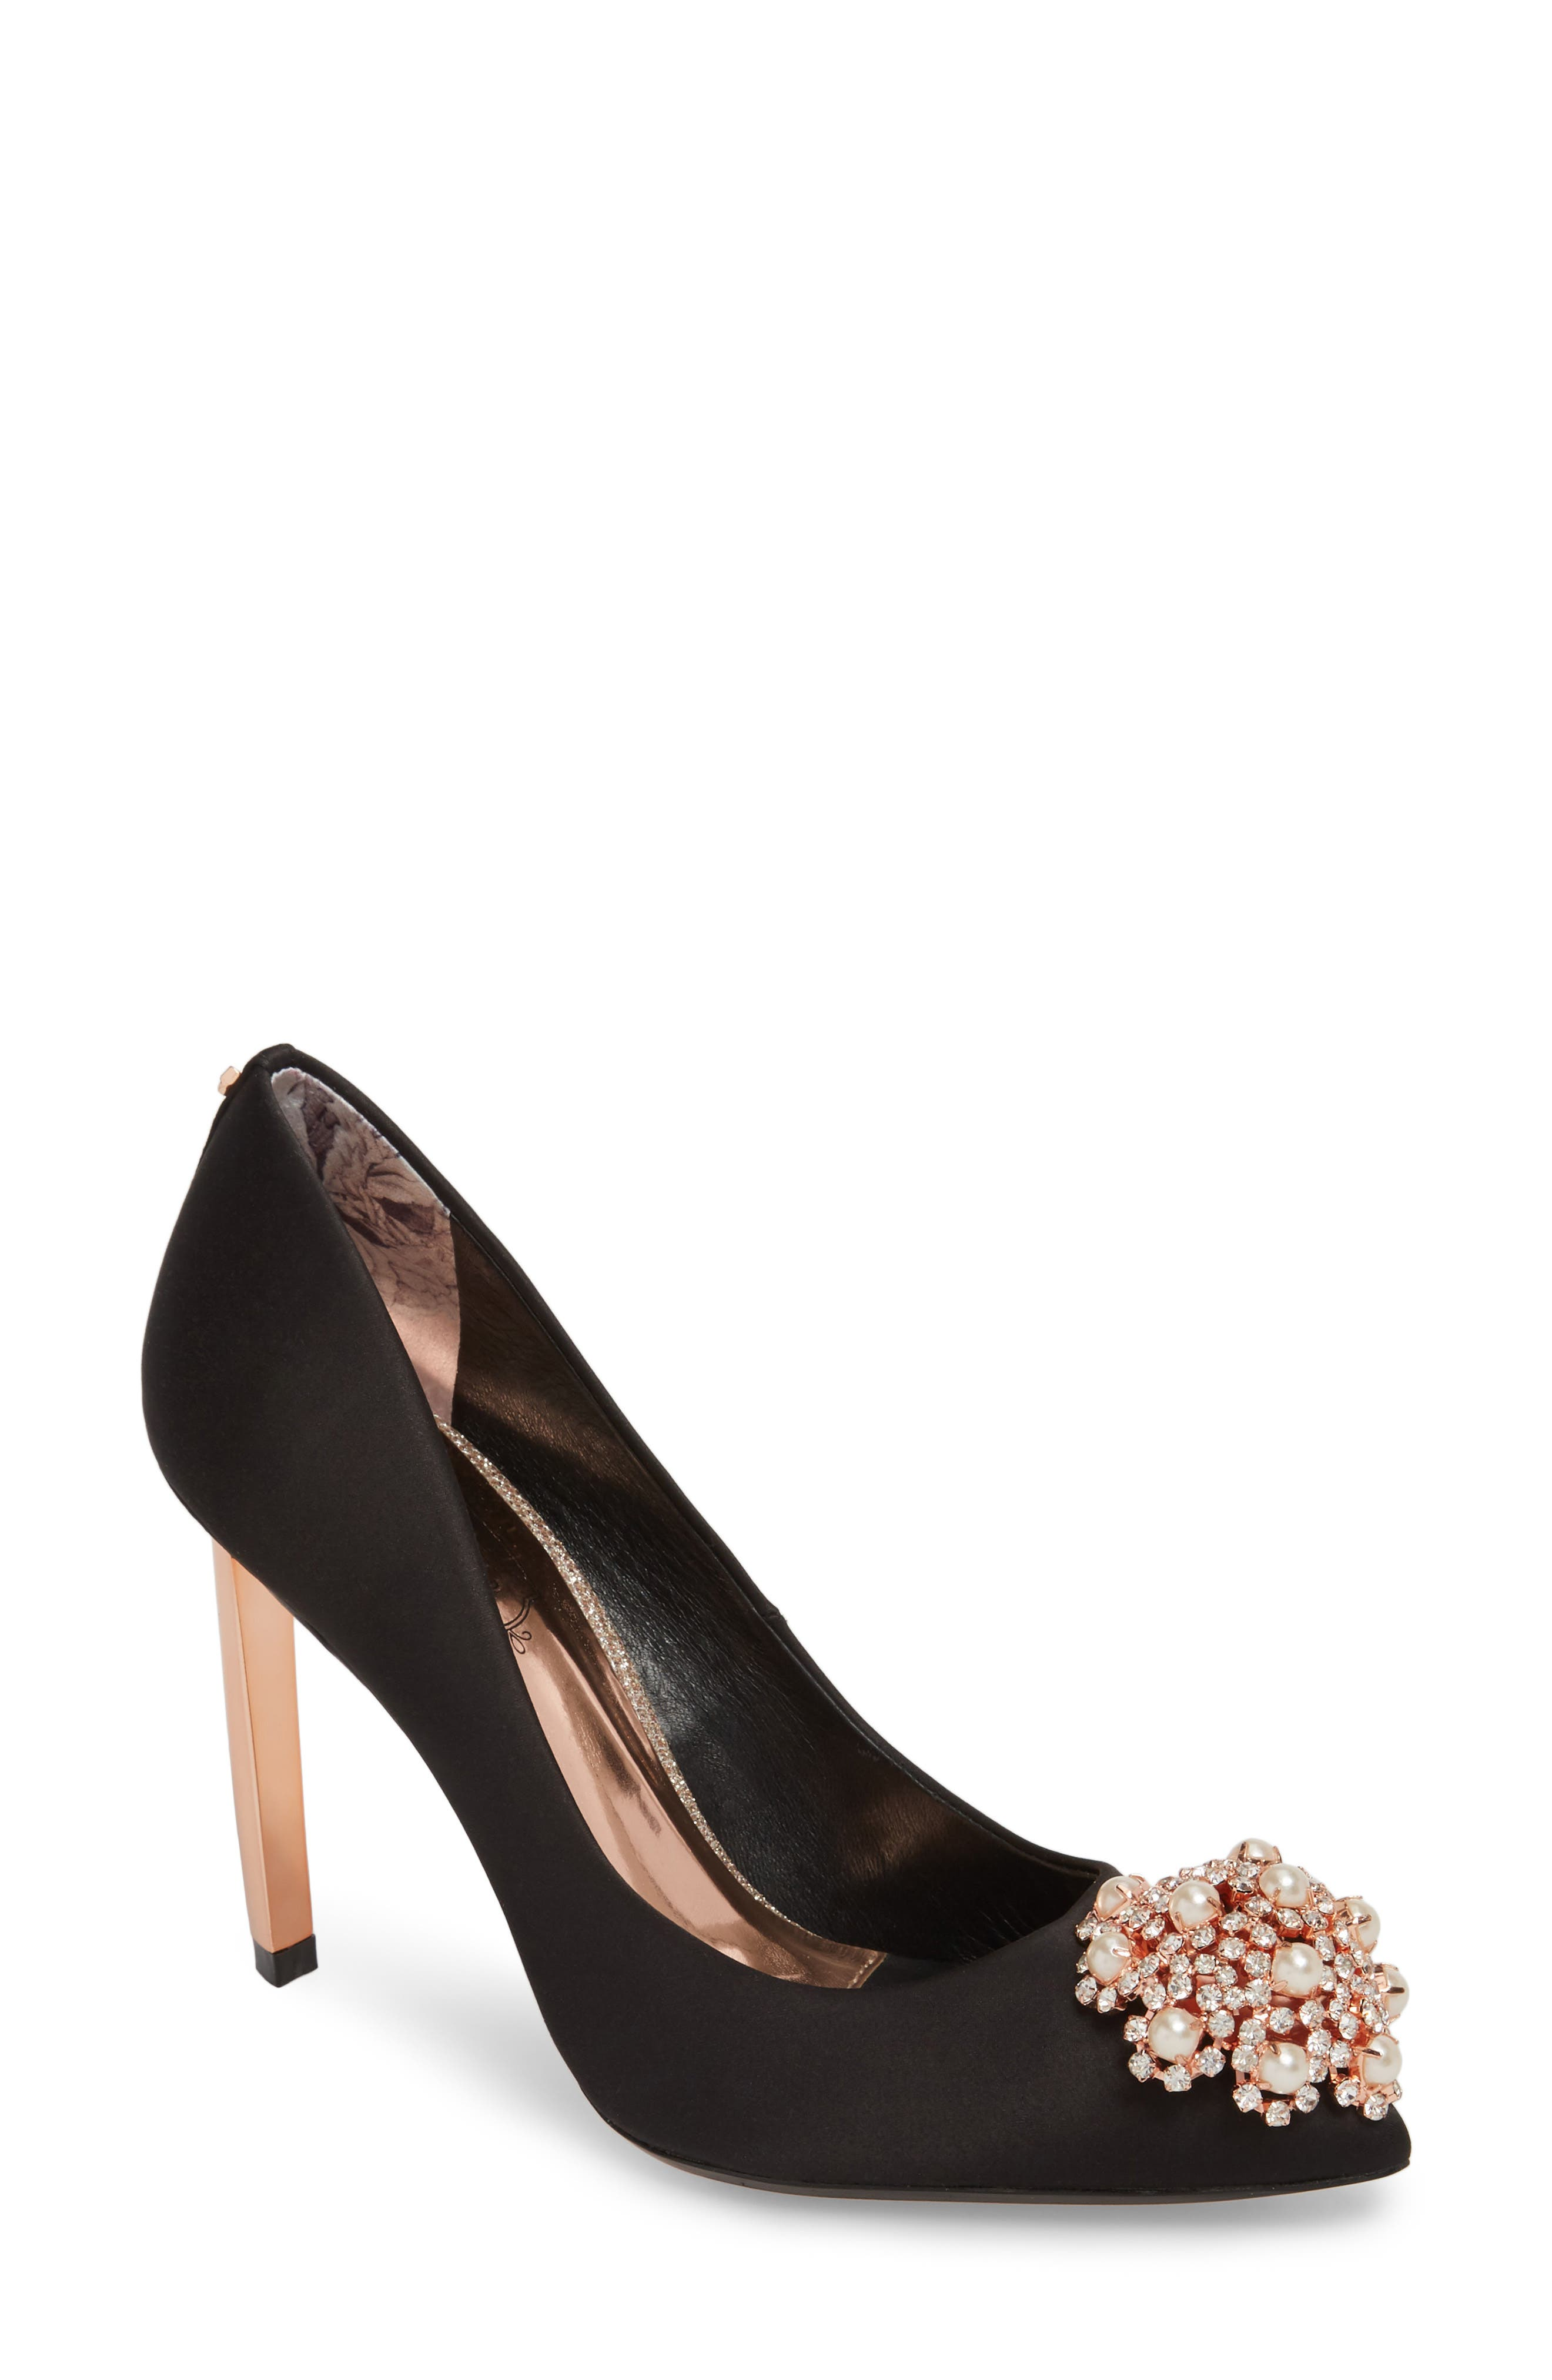 Peetch 2 Pump,                         Main,                         color, BLACK SATIN